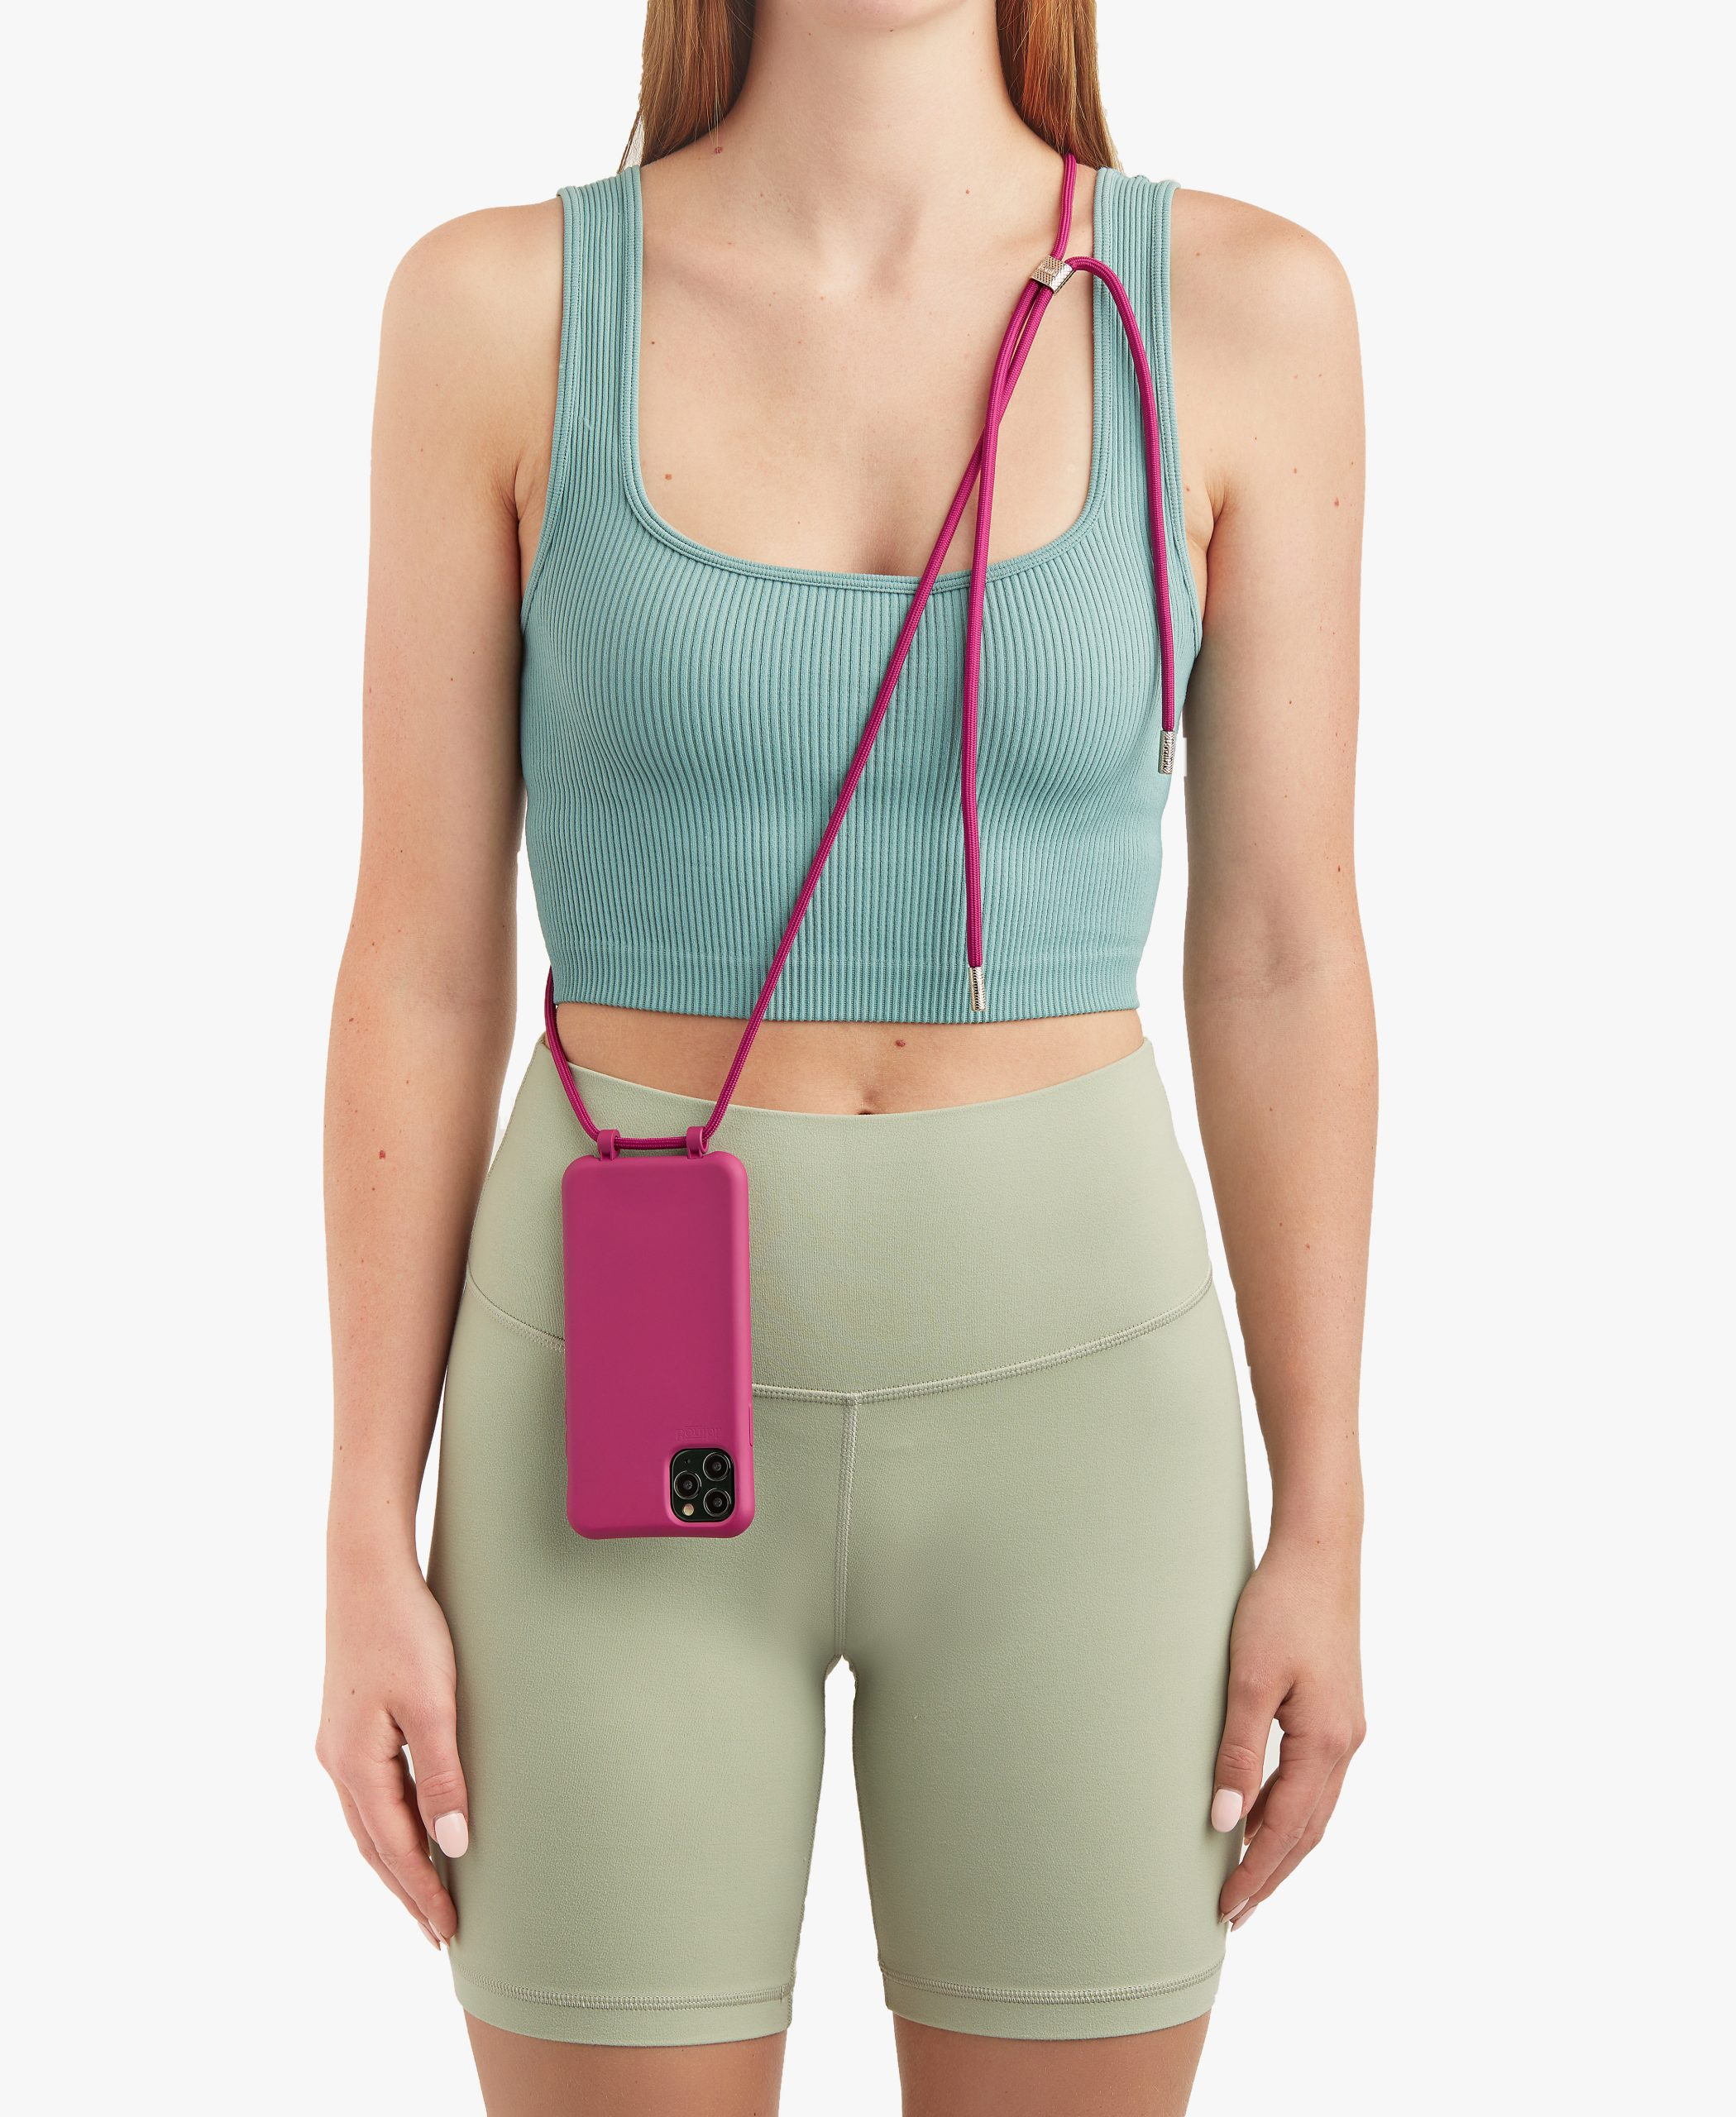 Bonibi-Crossbody-Phone-Case-iPhone-Raspberry-Case-Raspberry-Cord-Silver-Hardware-Necklace-Lanyard-Lifestyle-Phone-Case-With-Strap-Neck Holder-Card Holder-Tether-Carrier-Functional